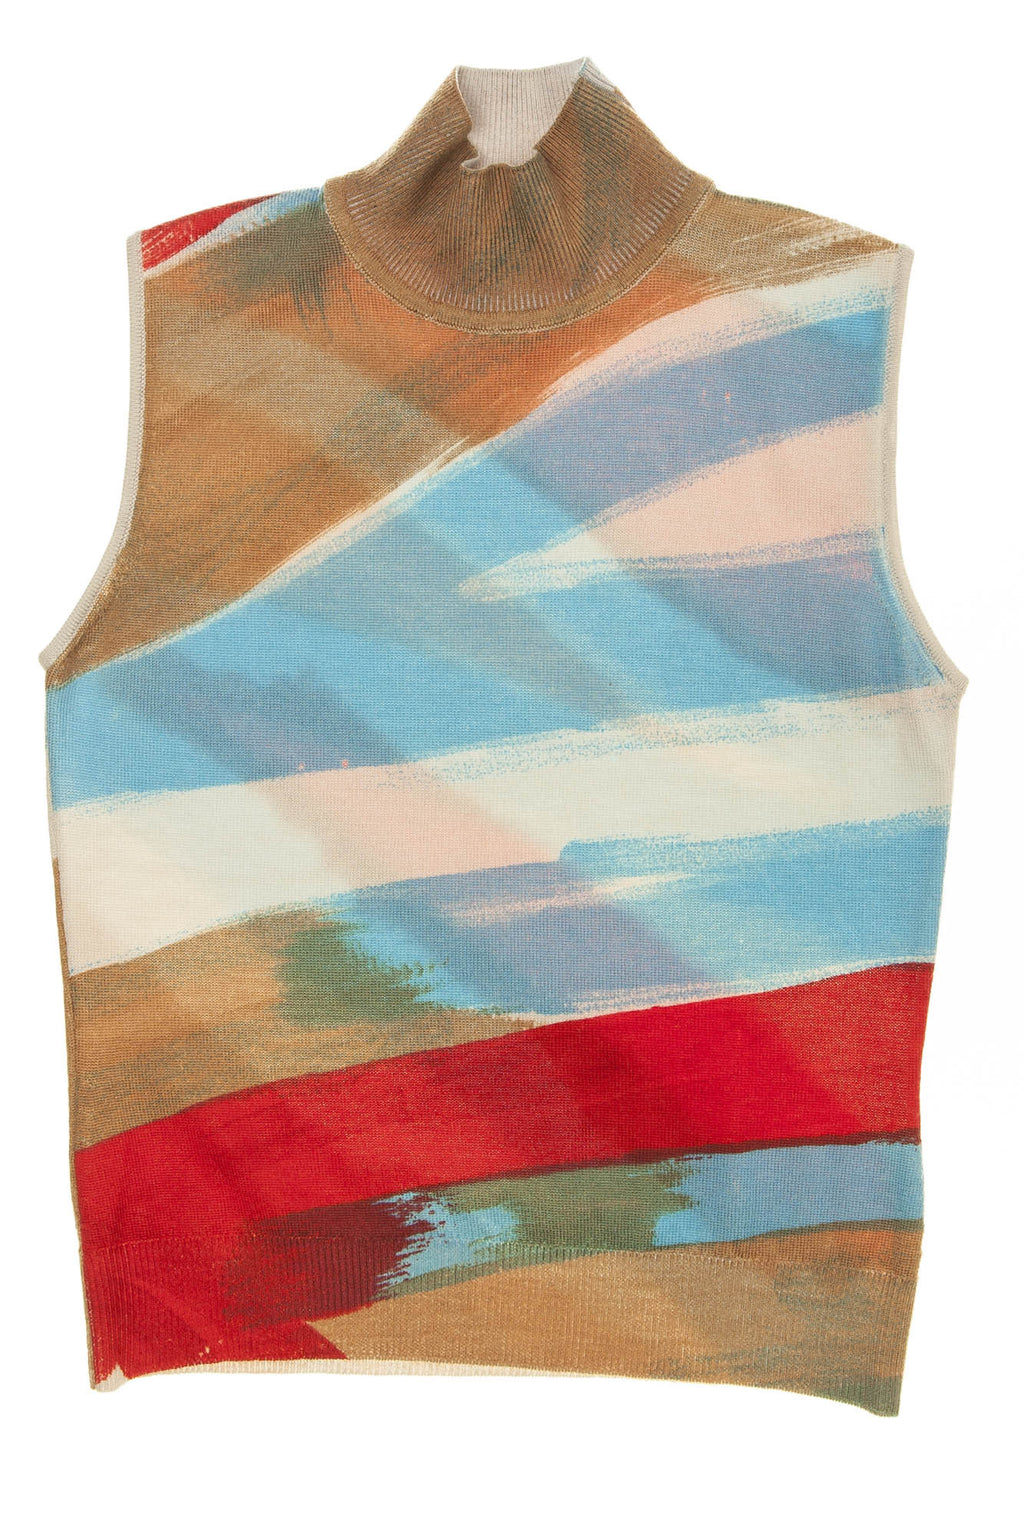 Versace - Multi Color Sleeveless Sweater - IT 40